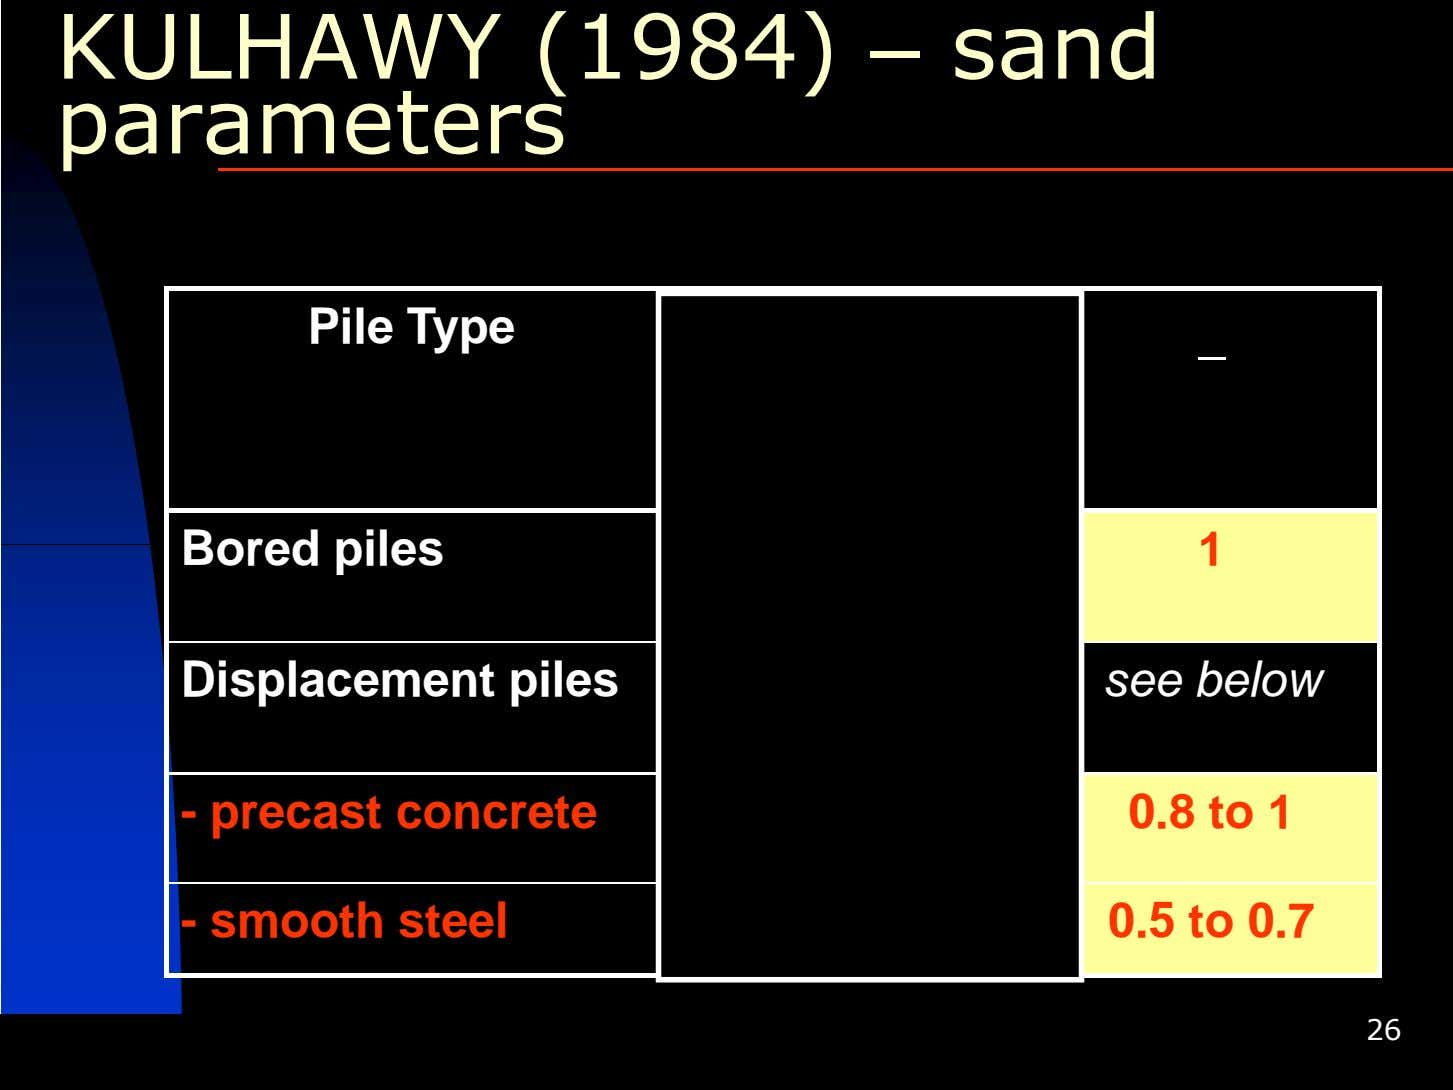 KULHAWY (1984) – sand parameters Pile Type K s K o Bored piles 0.7 to